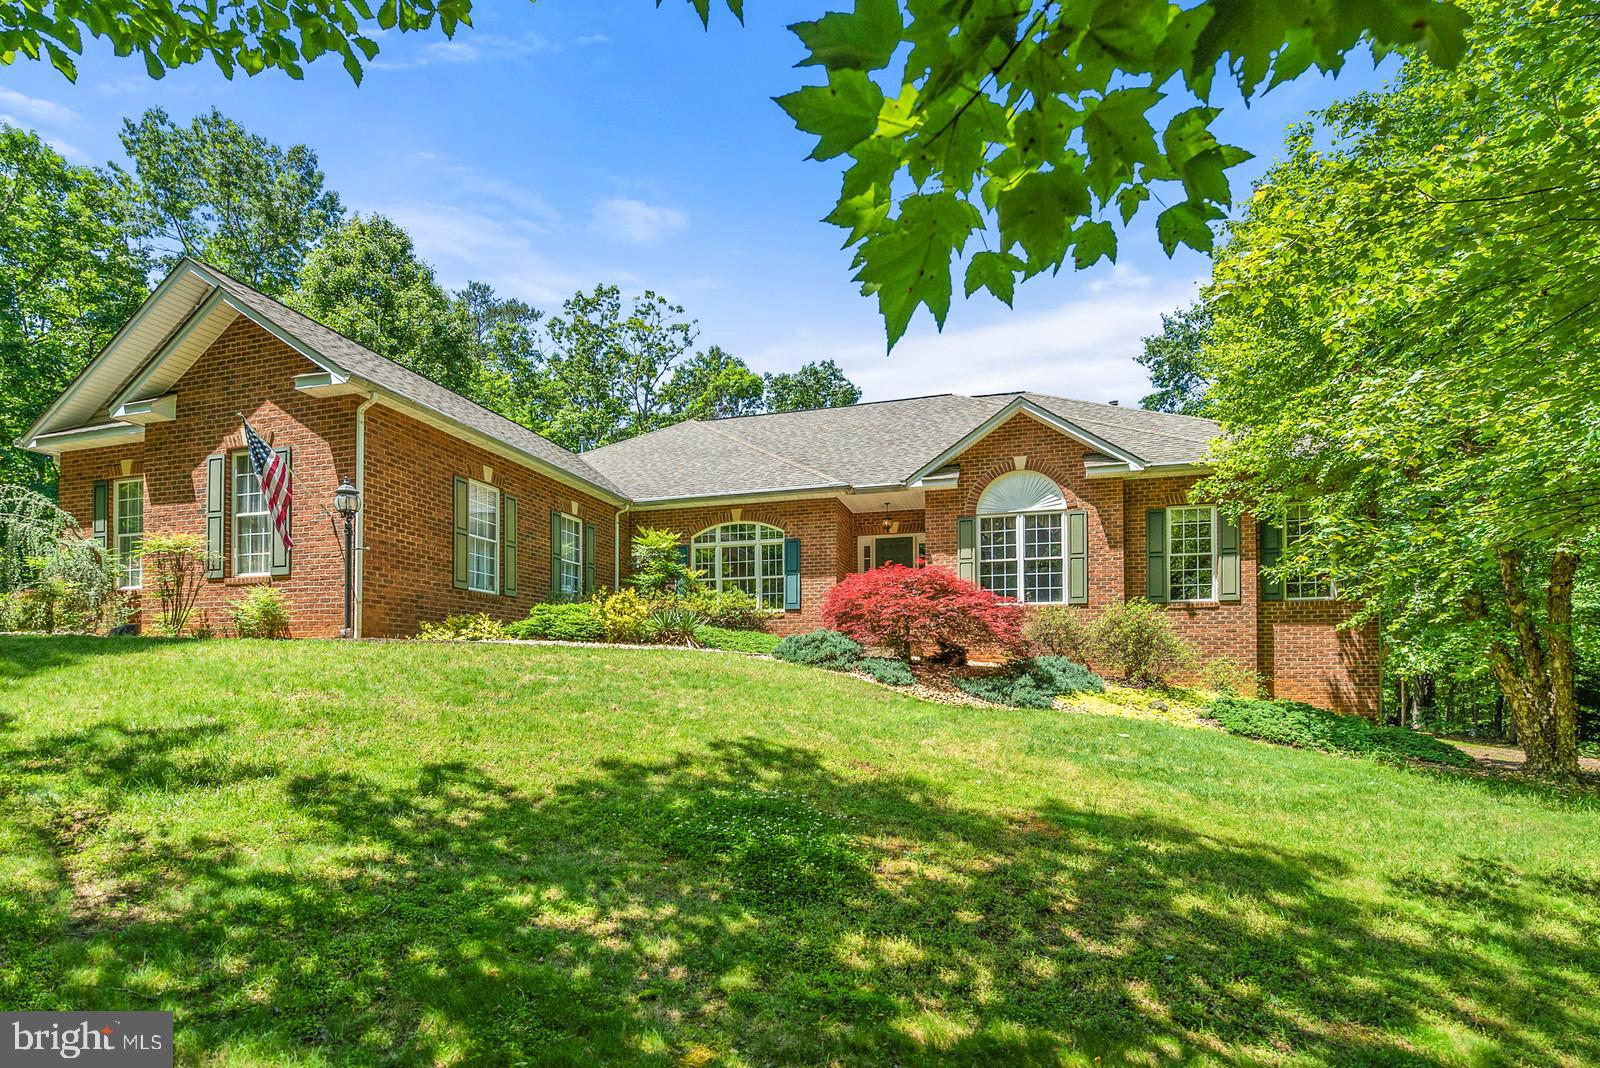 6134 WALKER'S HOLLOW WAY, LOCUST GROVE, VA 22508